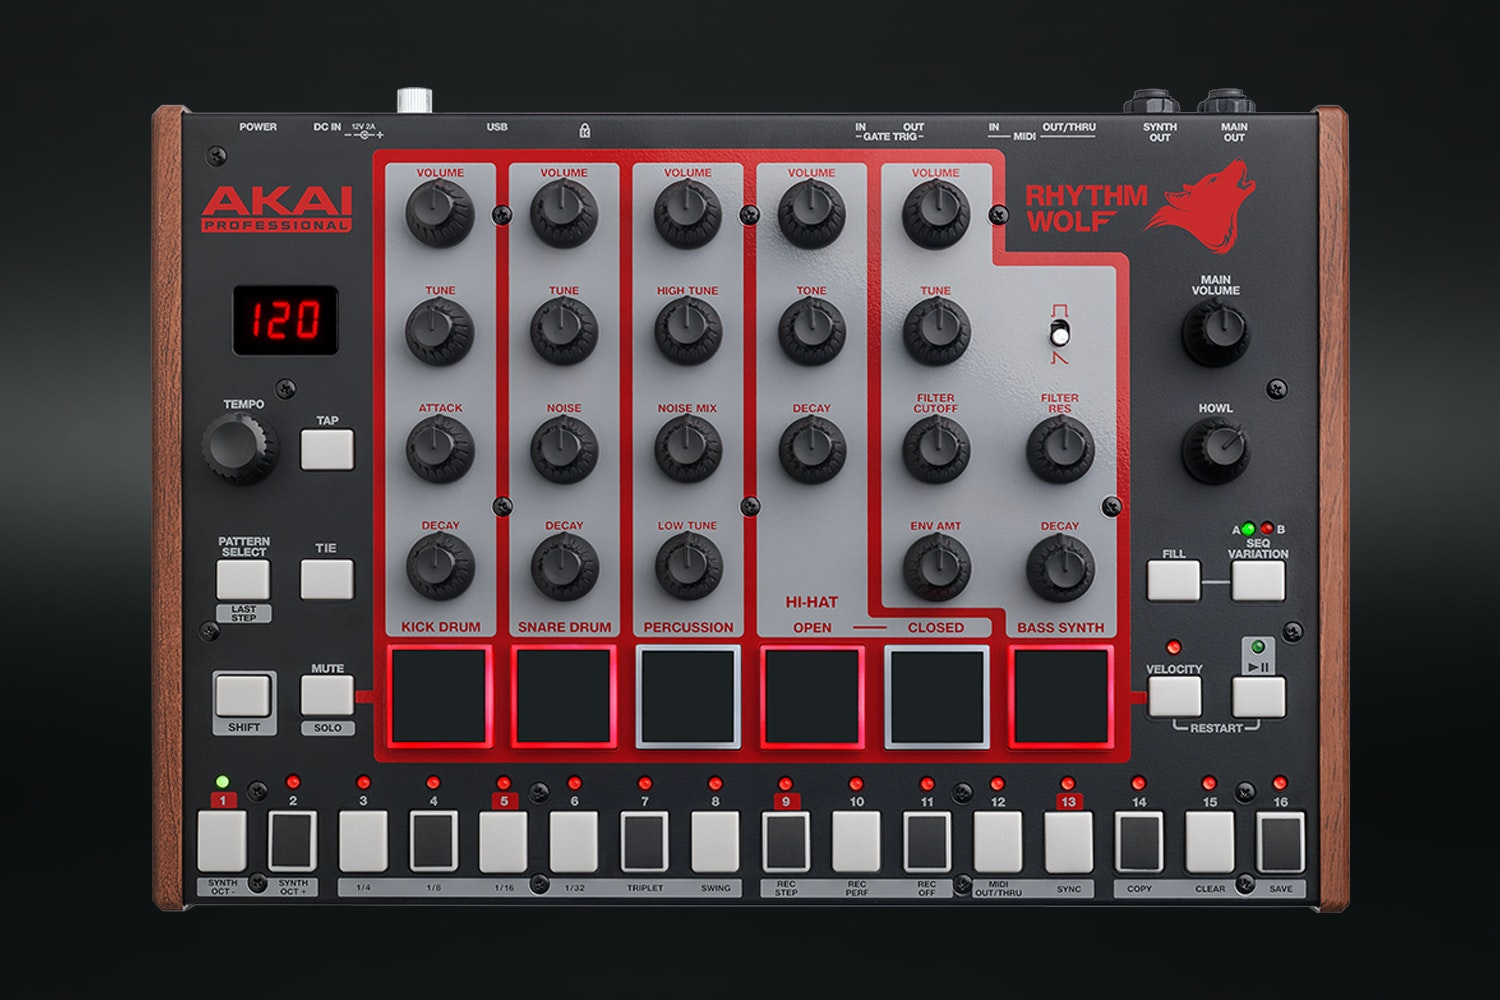 Akai Rhythm Wolf Analog Drum Machine & Synthesizer